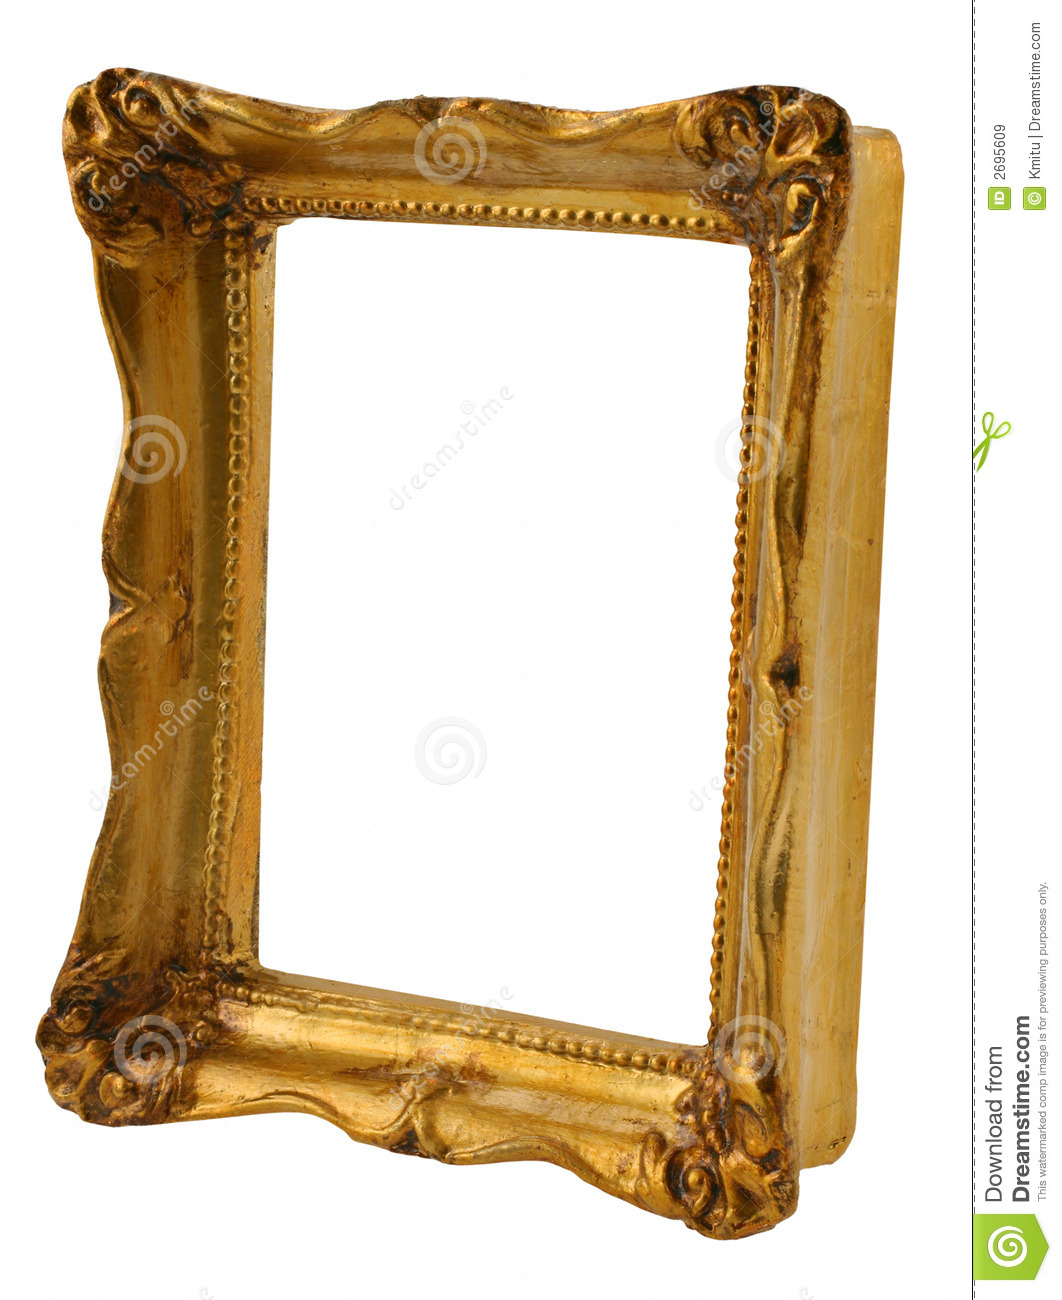 Gold frame from perspective